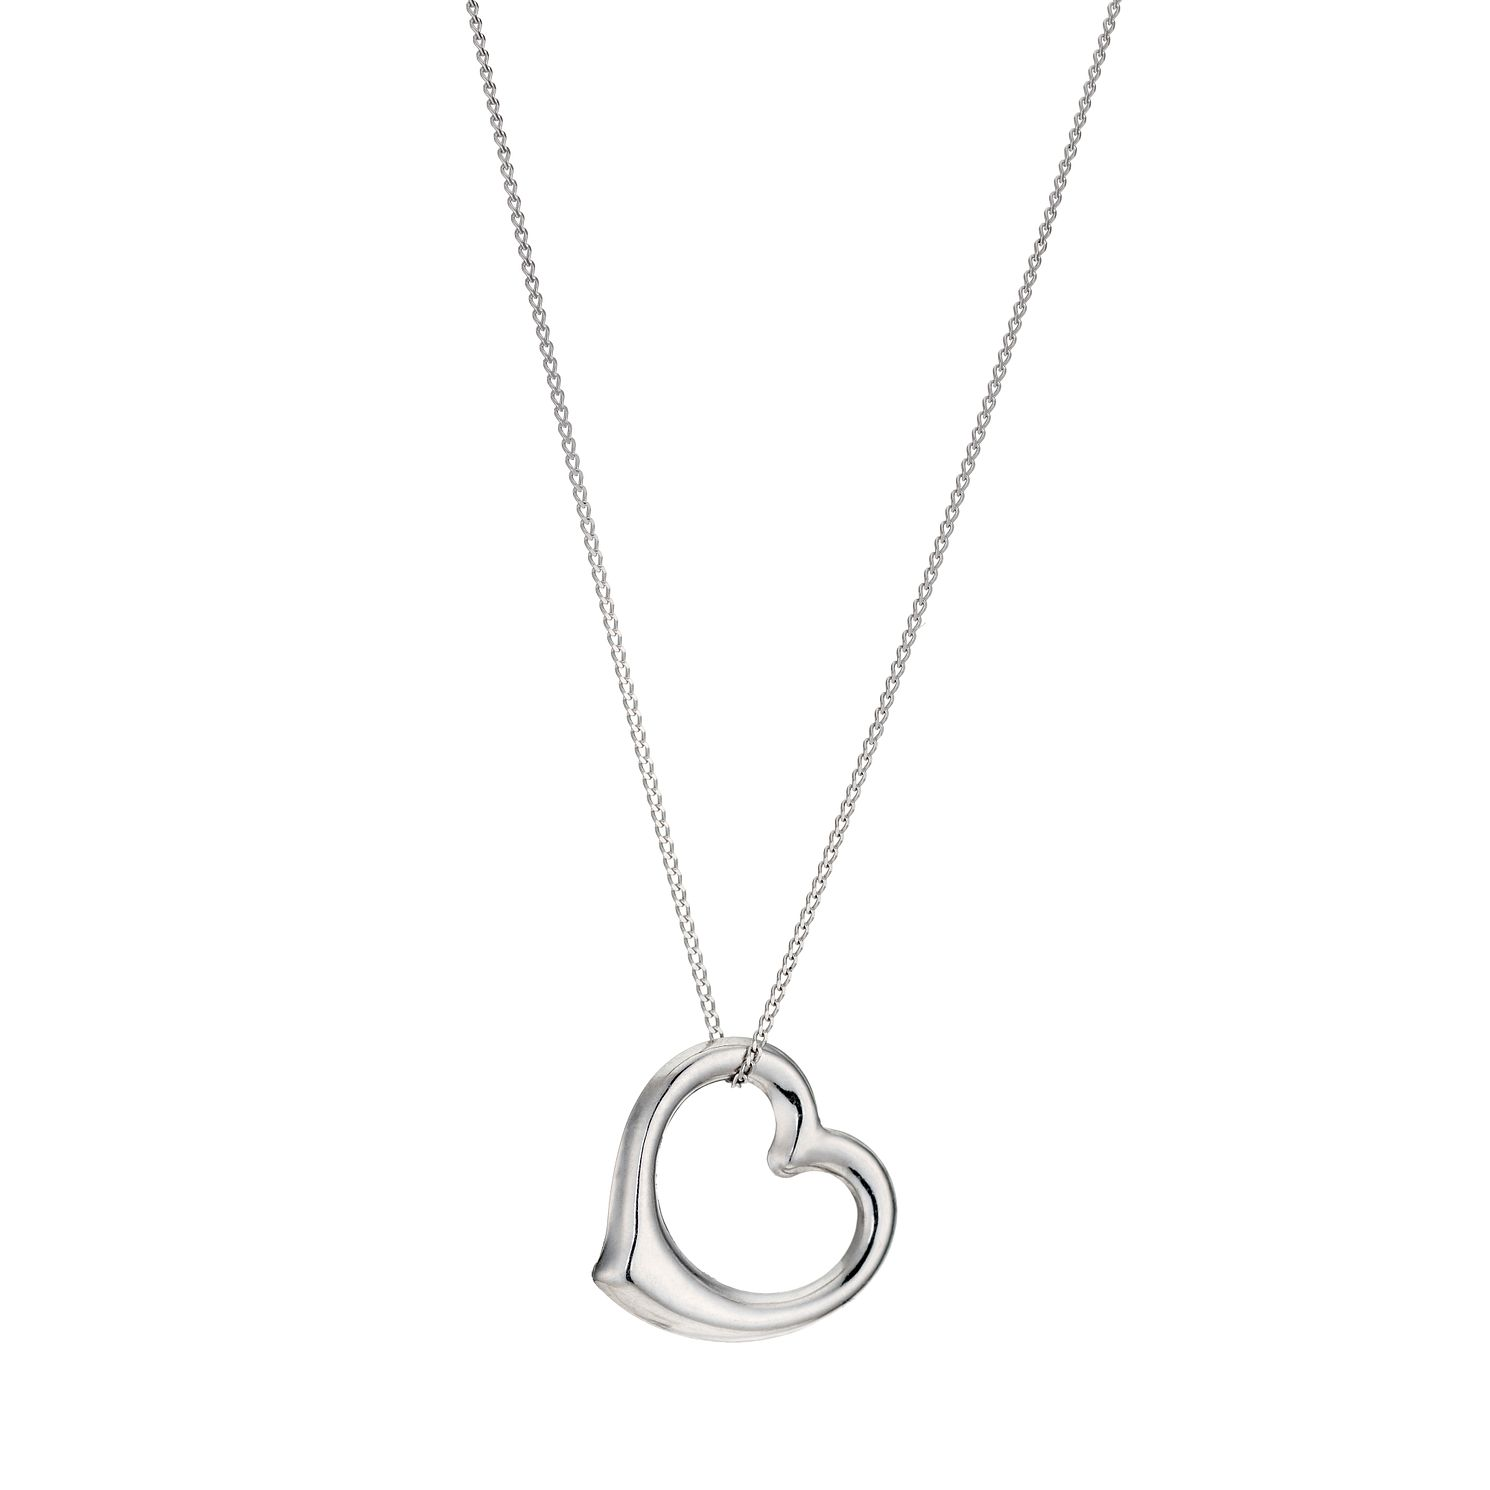 bead oliver jewellery necklace style heart mini necklaces silver bonas